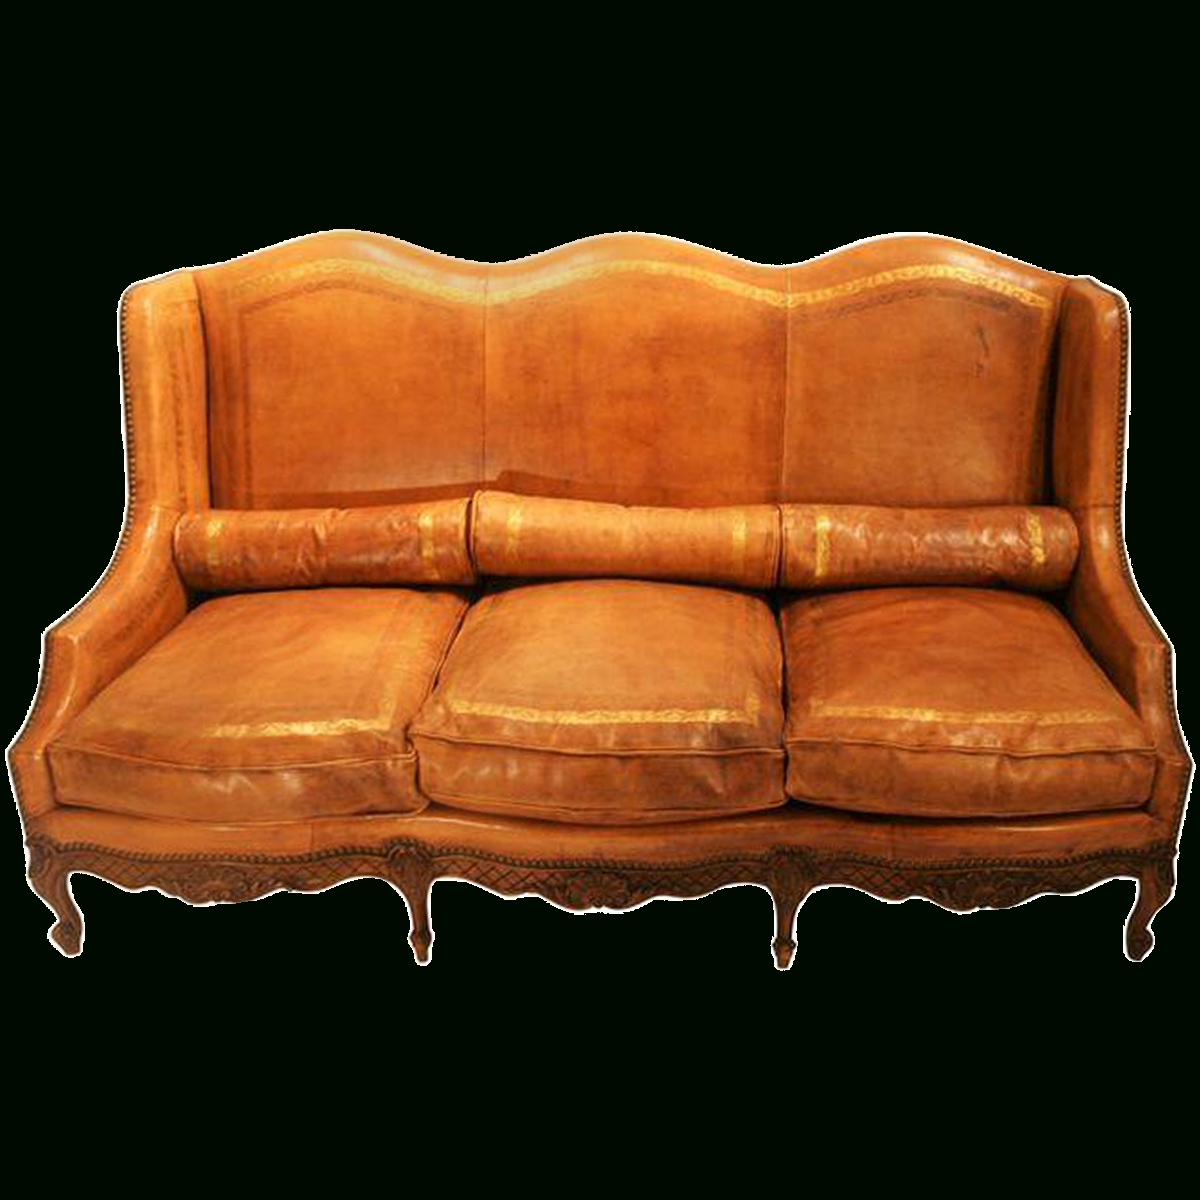 Viyet – Designer Furniture – Seating – Antique Louis Xv Camelback Throughout Camelback Leather Sofas (View 3 of 20)